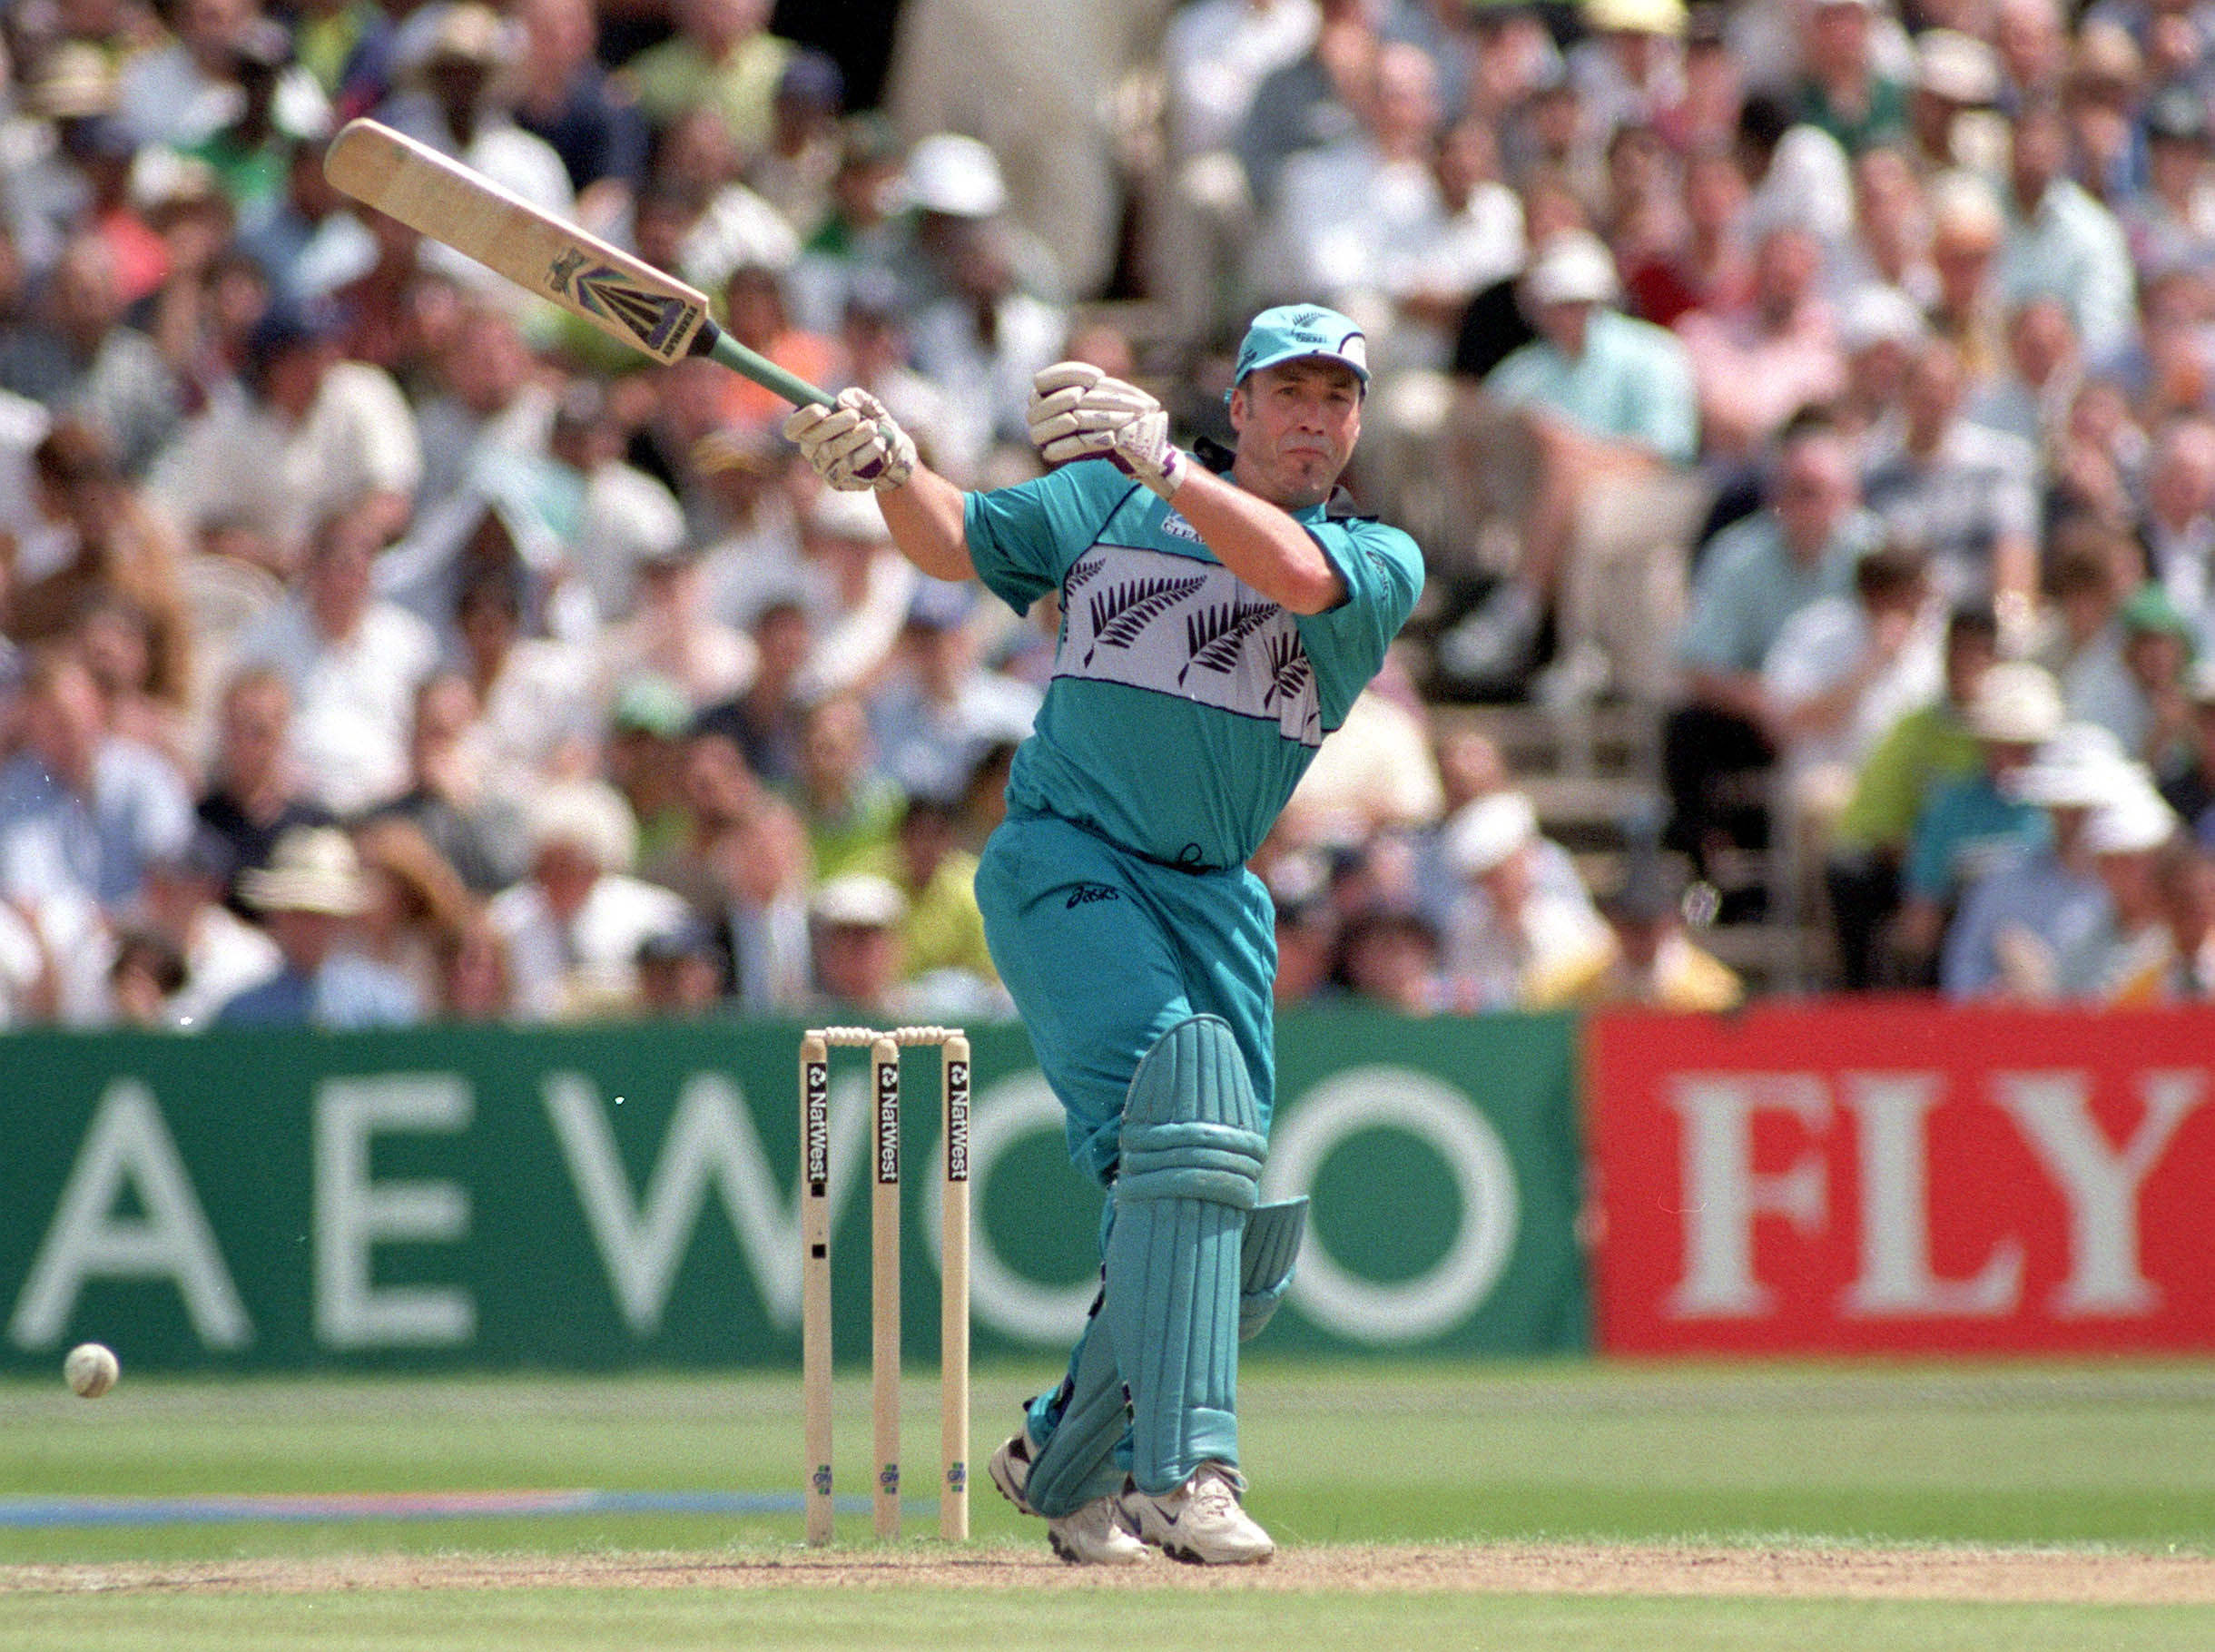 Roger Twose was a New Zealand former middle, born on 17 April 1968 in Torquay, Devon, England. He played 16 Tests and 87 ODI's for black caps in the late 1990s.